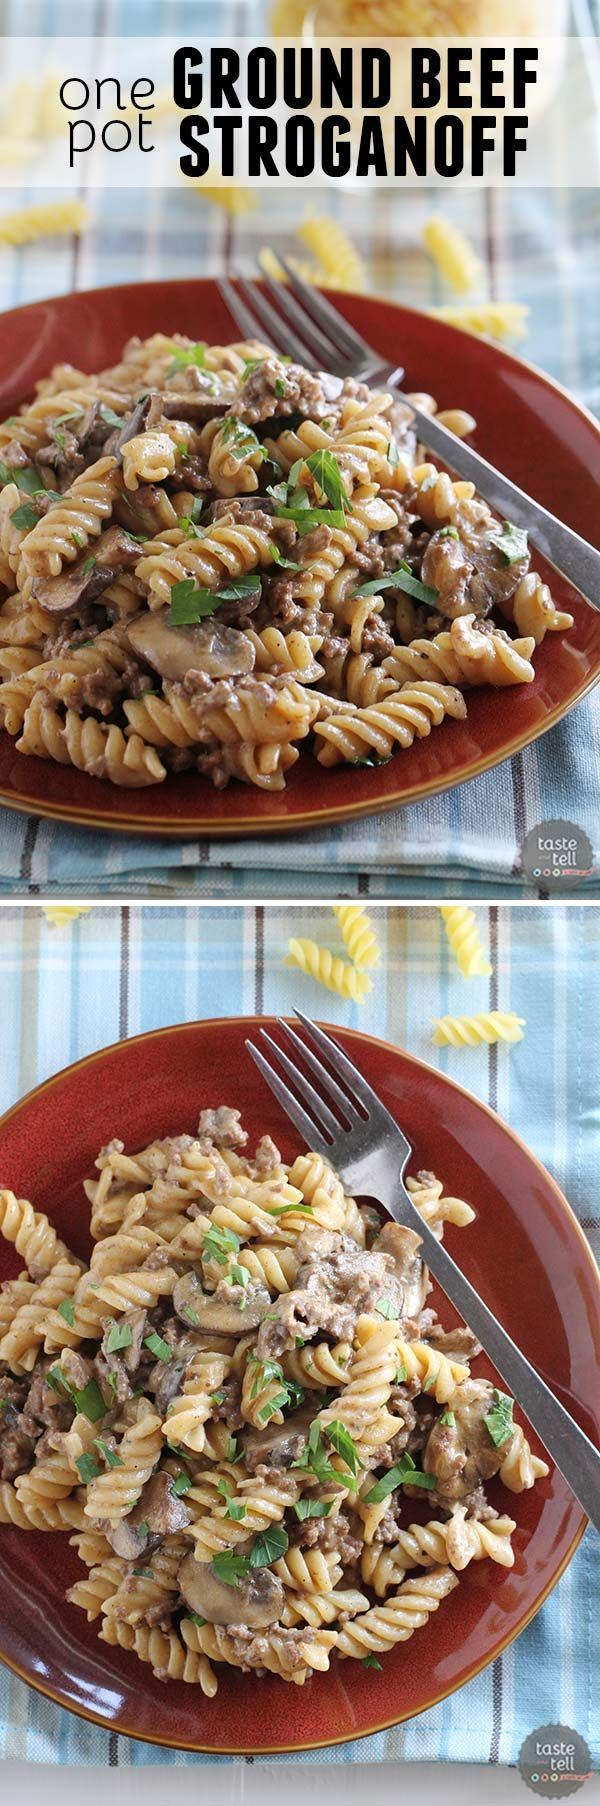 Comforting and humble, this One Pot Ground Beef Stroganoff is full of beefy flavor. And there is only one pot to clean up after dinner!: